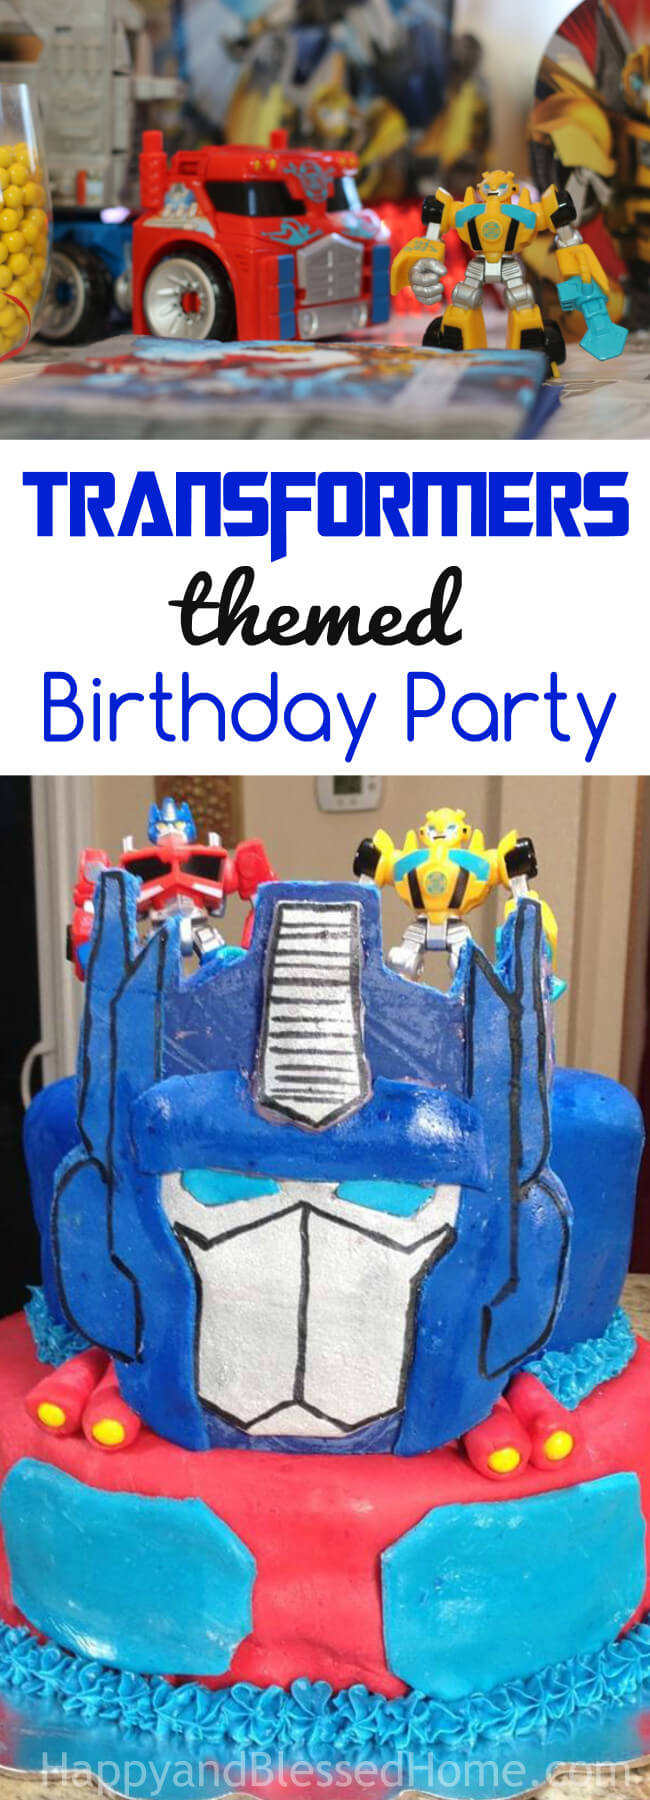 Fun Ideas For Kid Games And Party Food A Fantastic Transformers Birthday